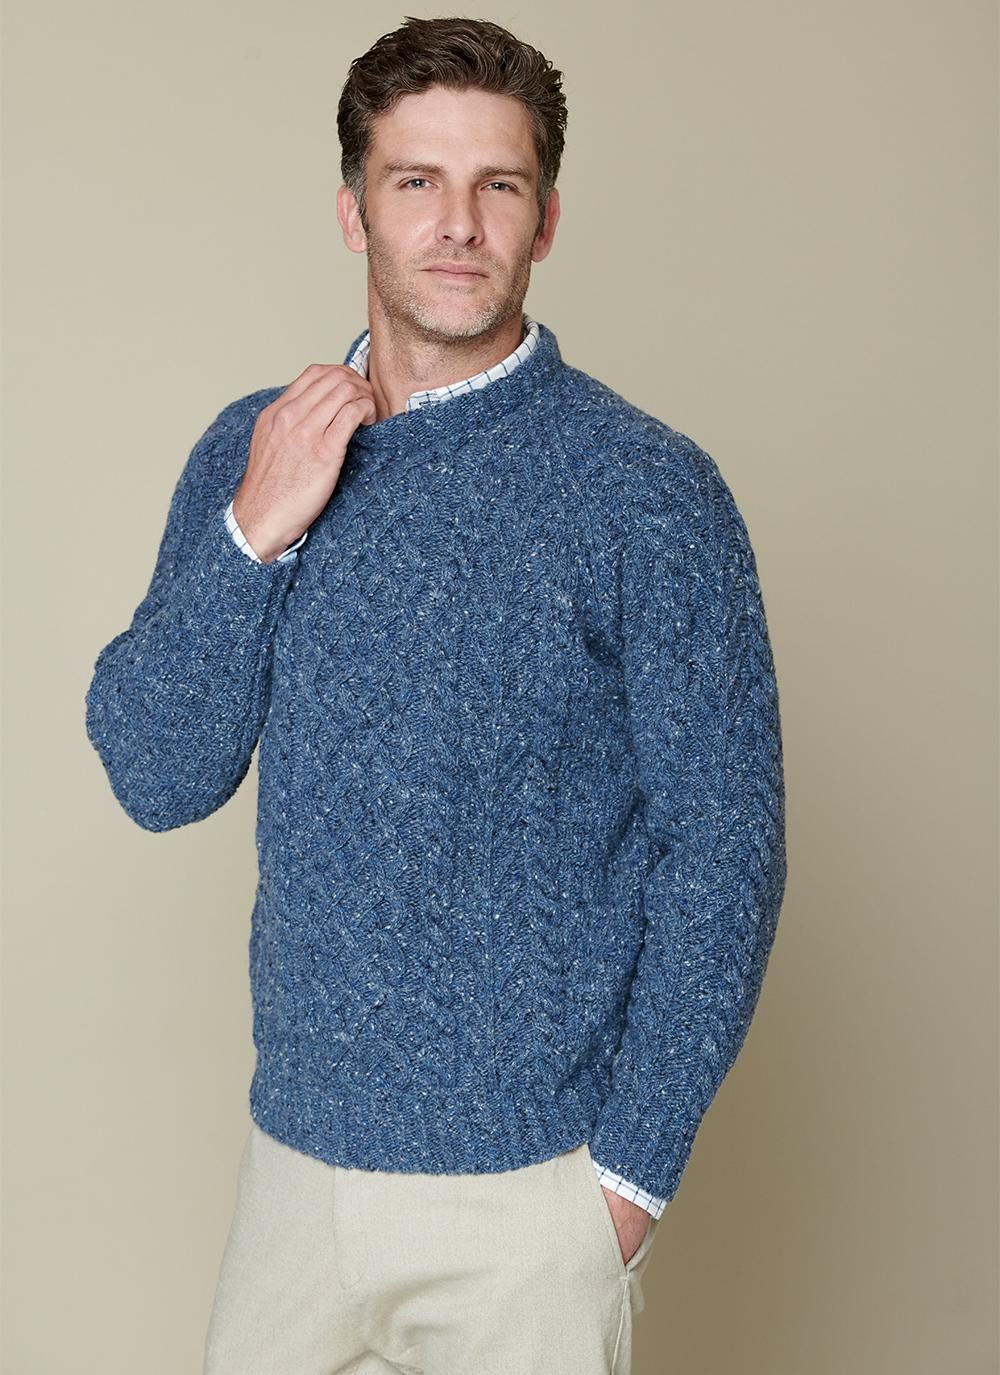 Fishing Trip Aran Crew Neck Sweater